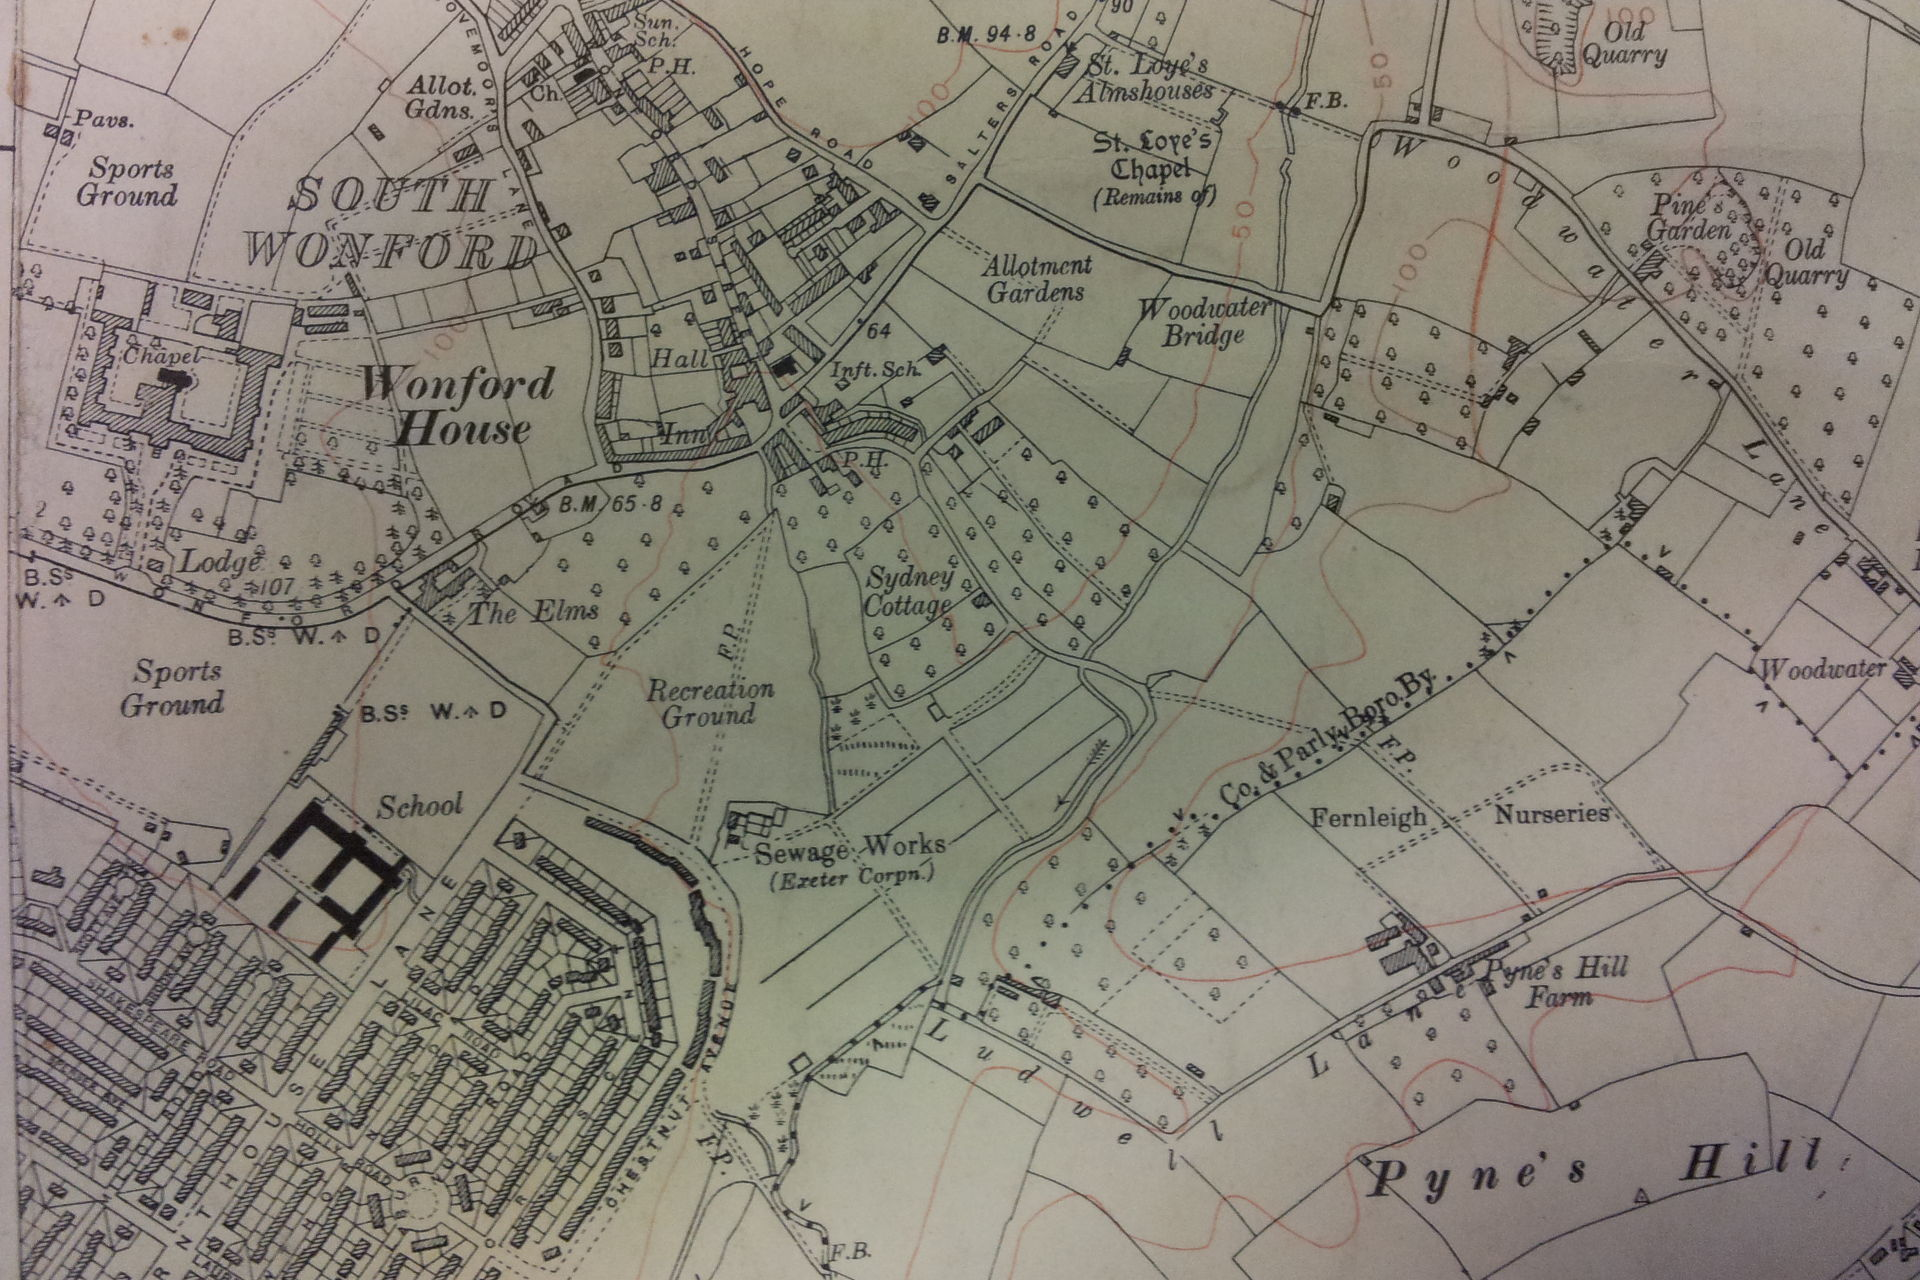 Photo of Wonford St Loyes on 1932 OS map with 1938 revisions